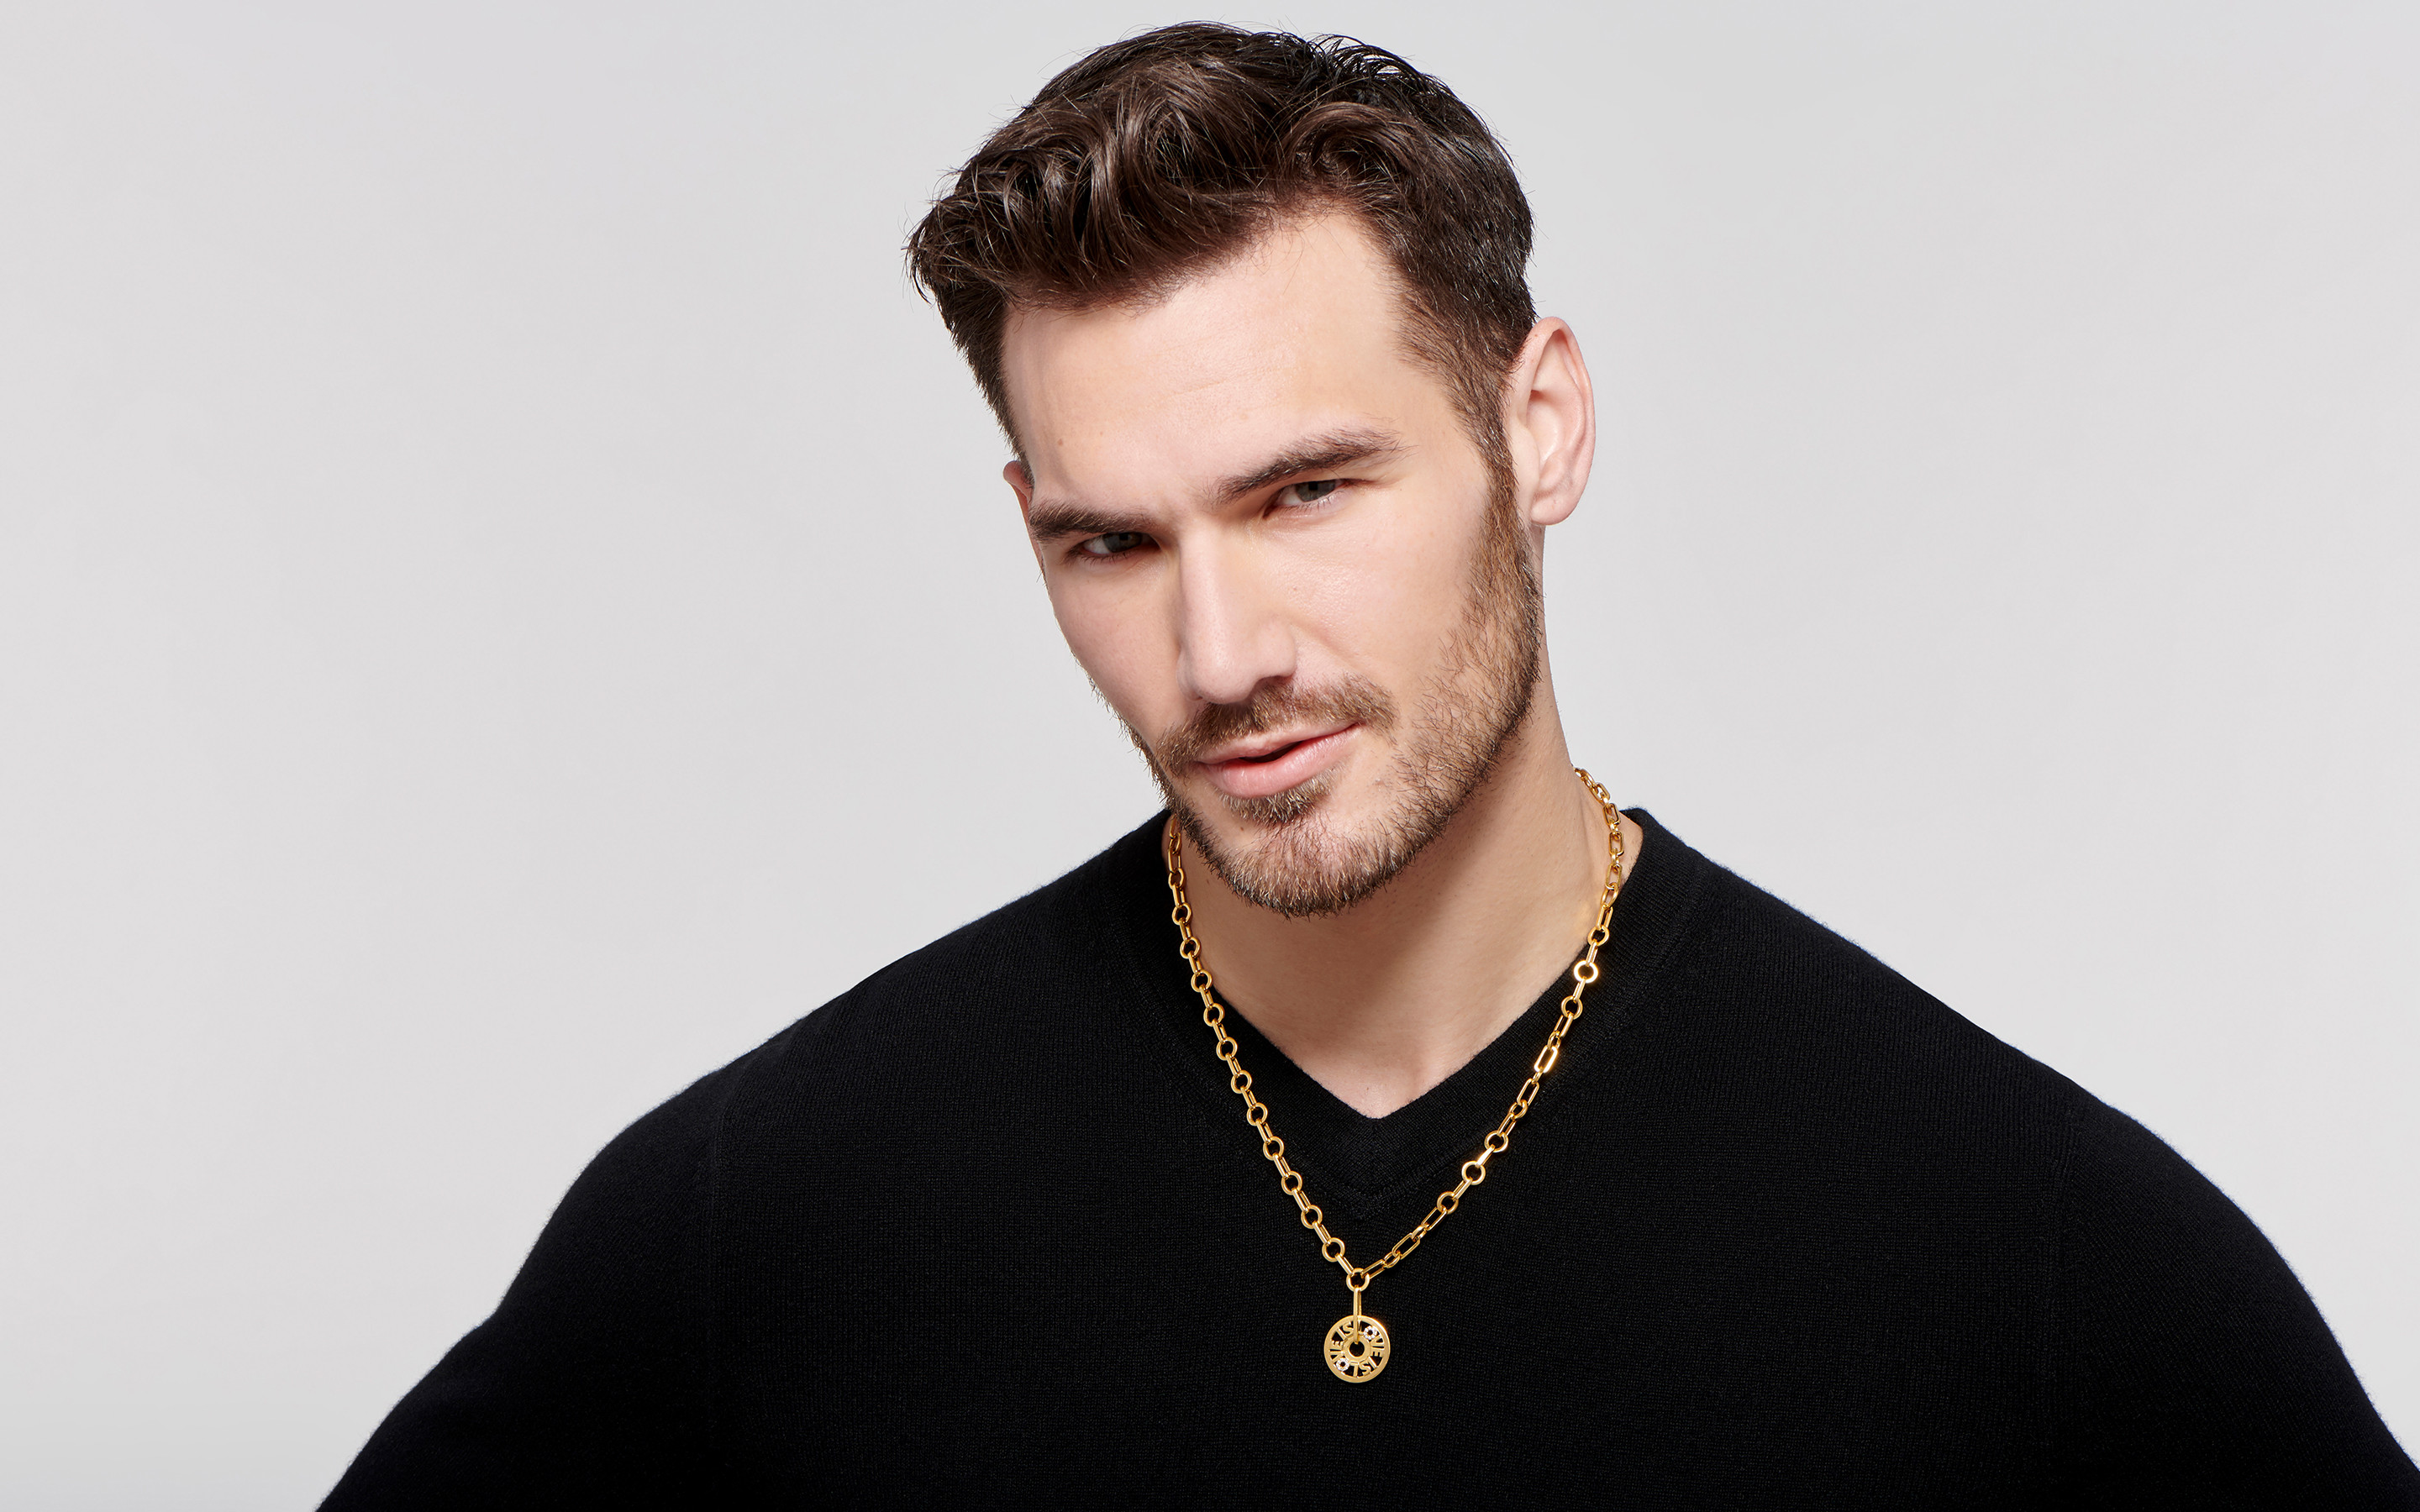 22 karat gold necklace displayed on the neck of young male model